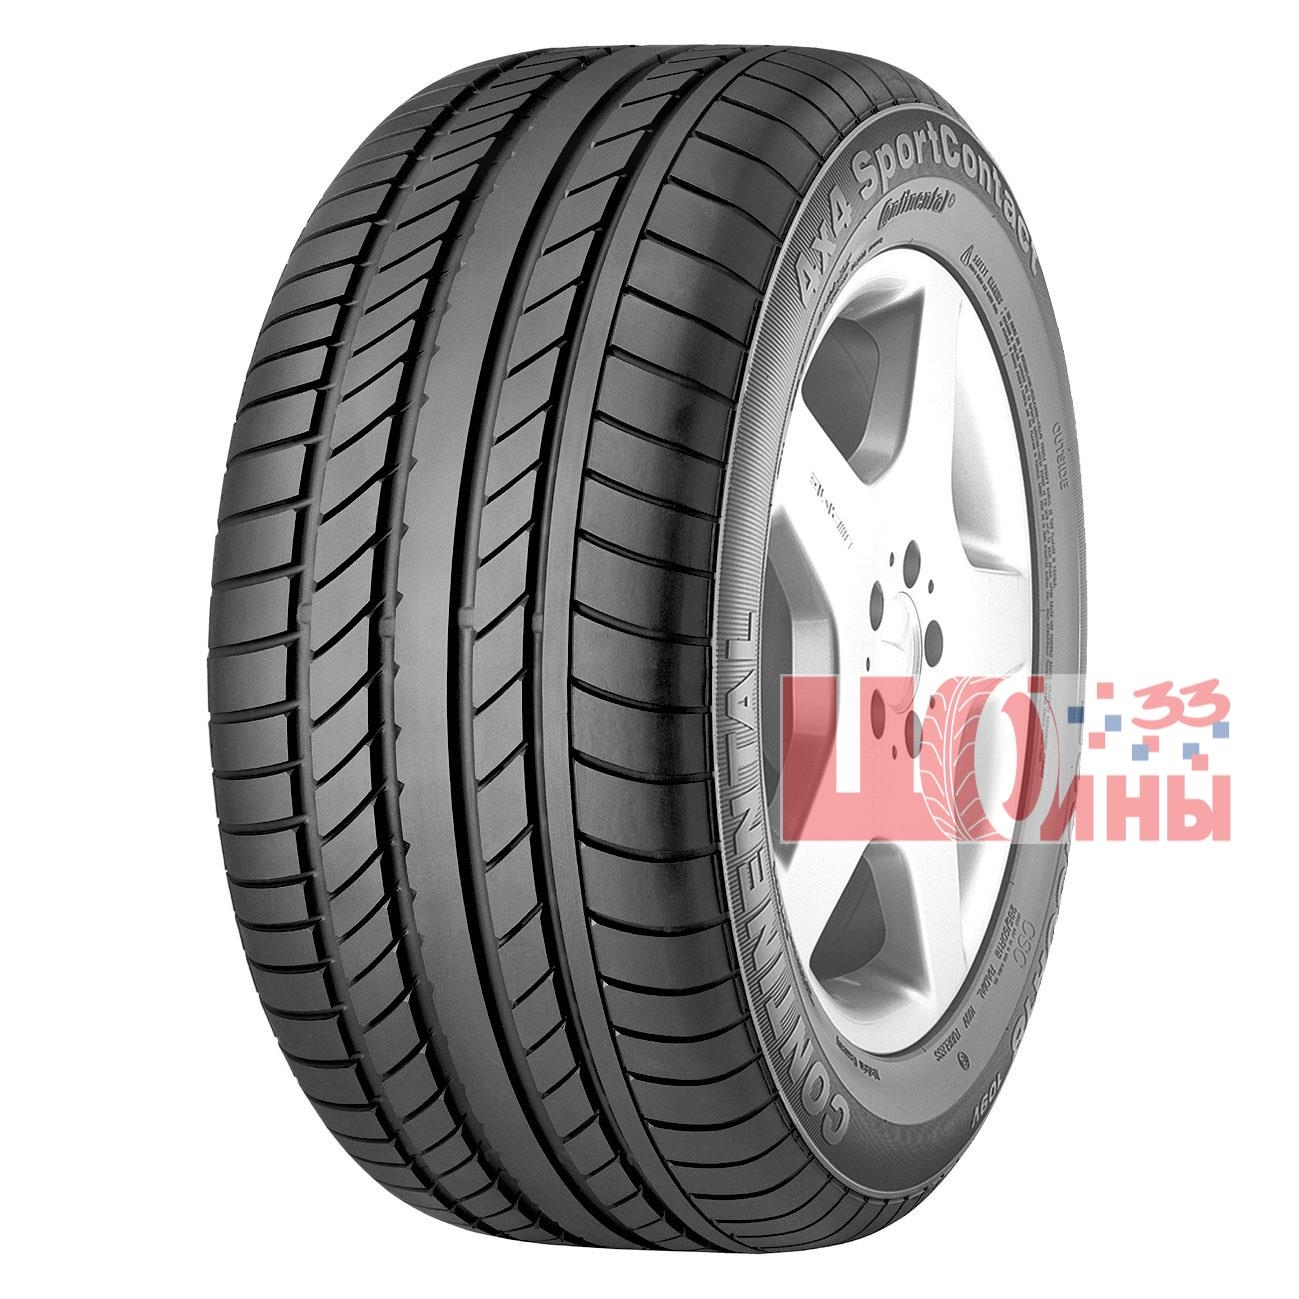 Б/У 275/45 R19 Лето CONTINENTAL 4*4 Sport Contact Кат. 3